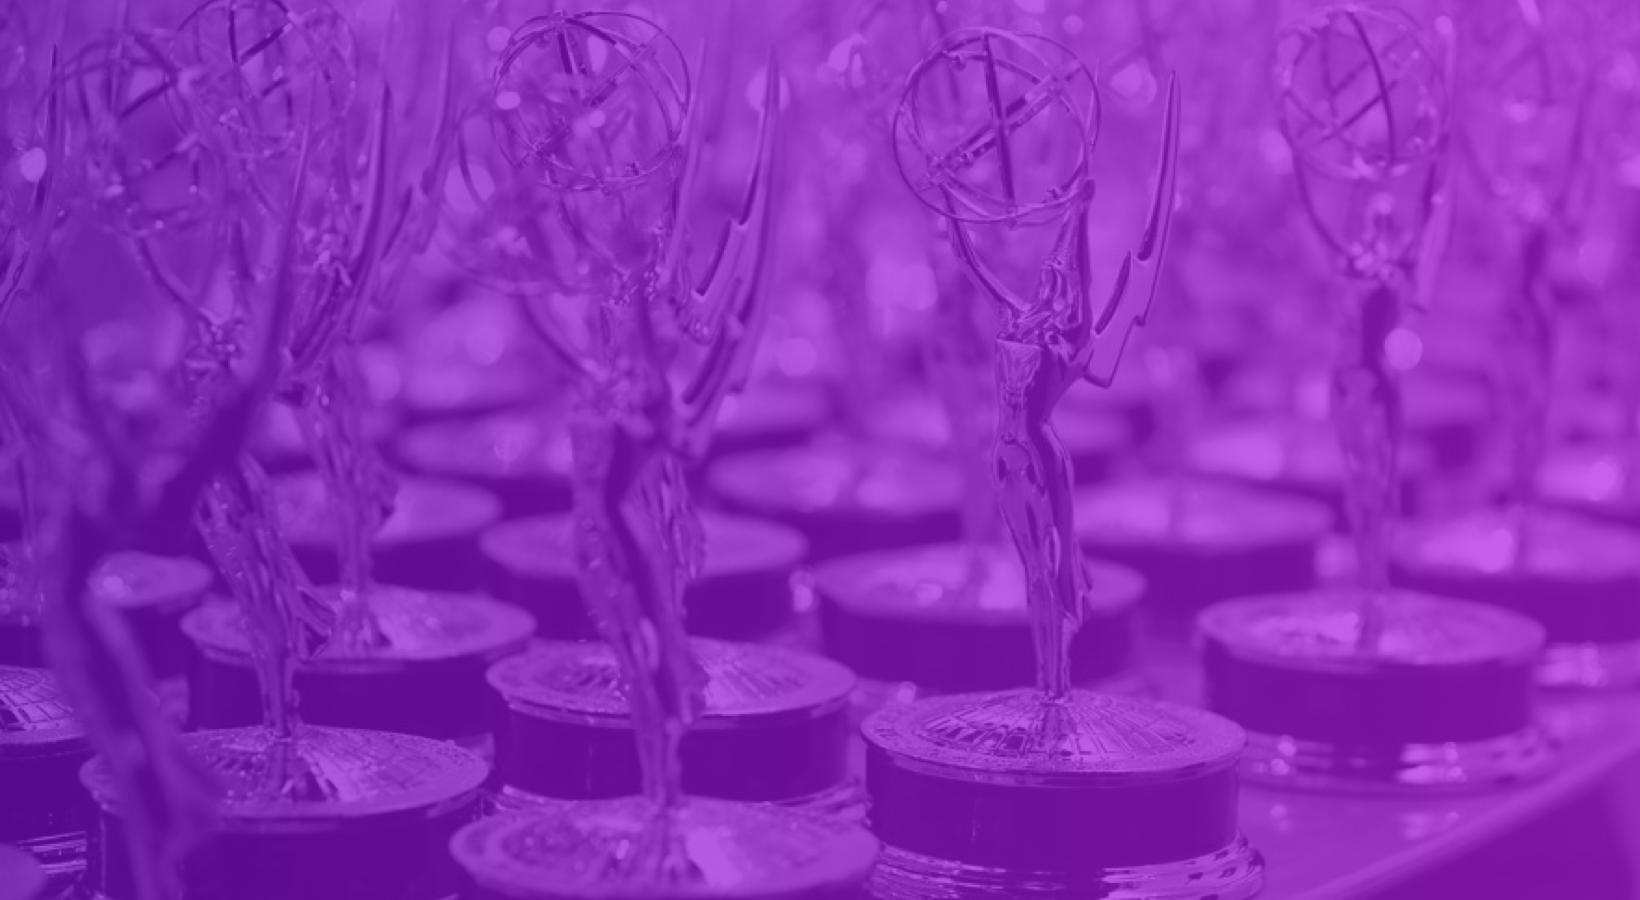 Consumers think the Emmys should avoid politics -